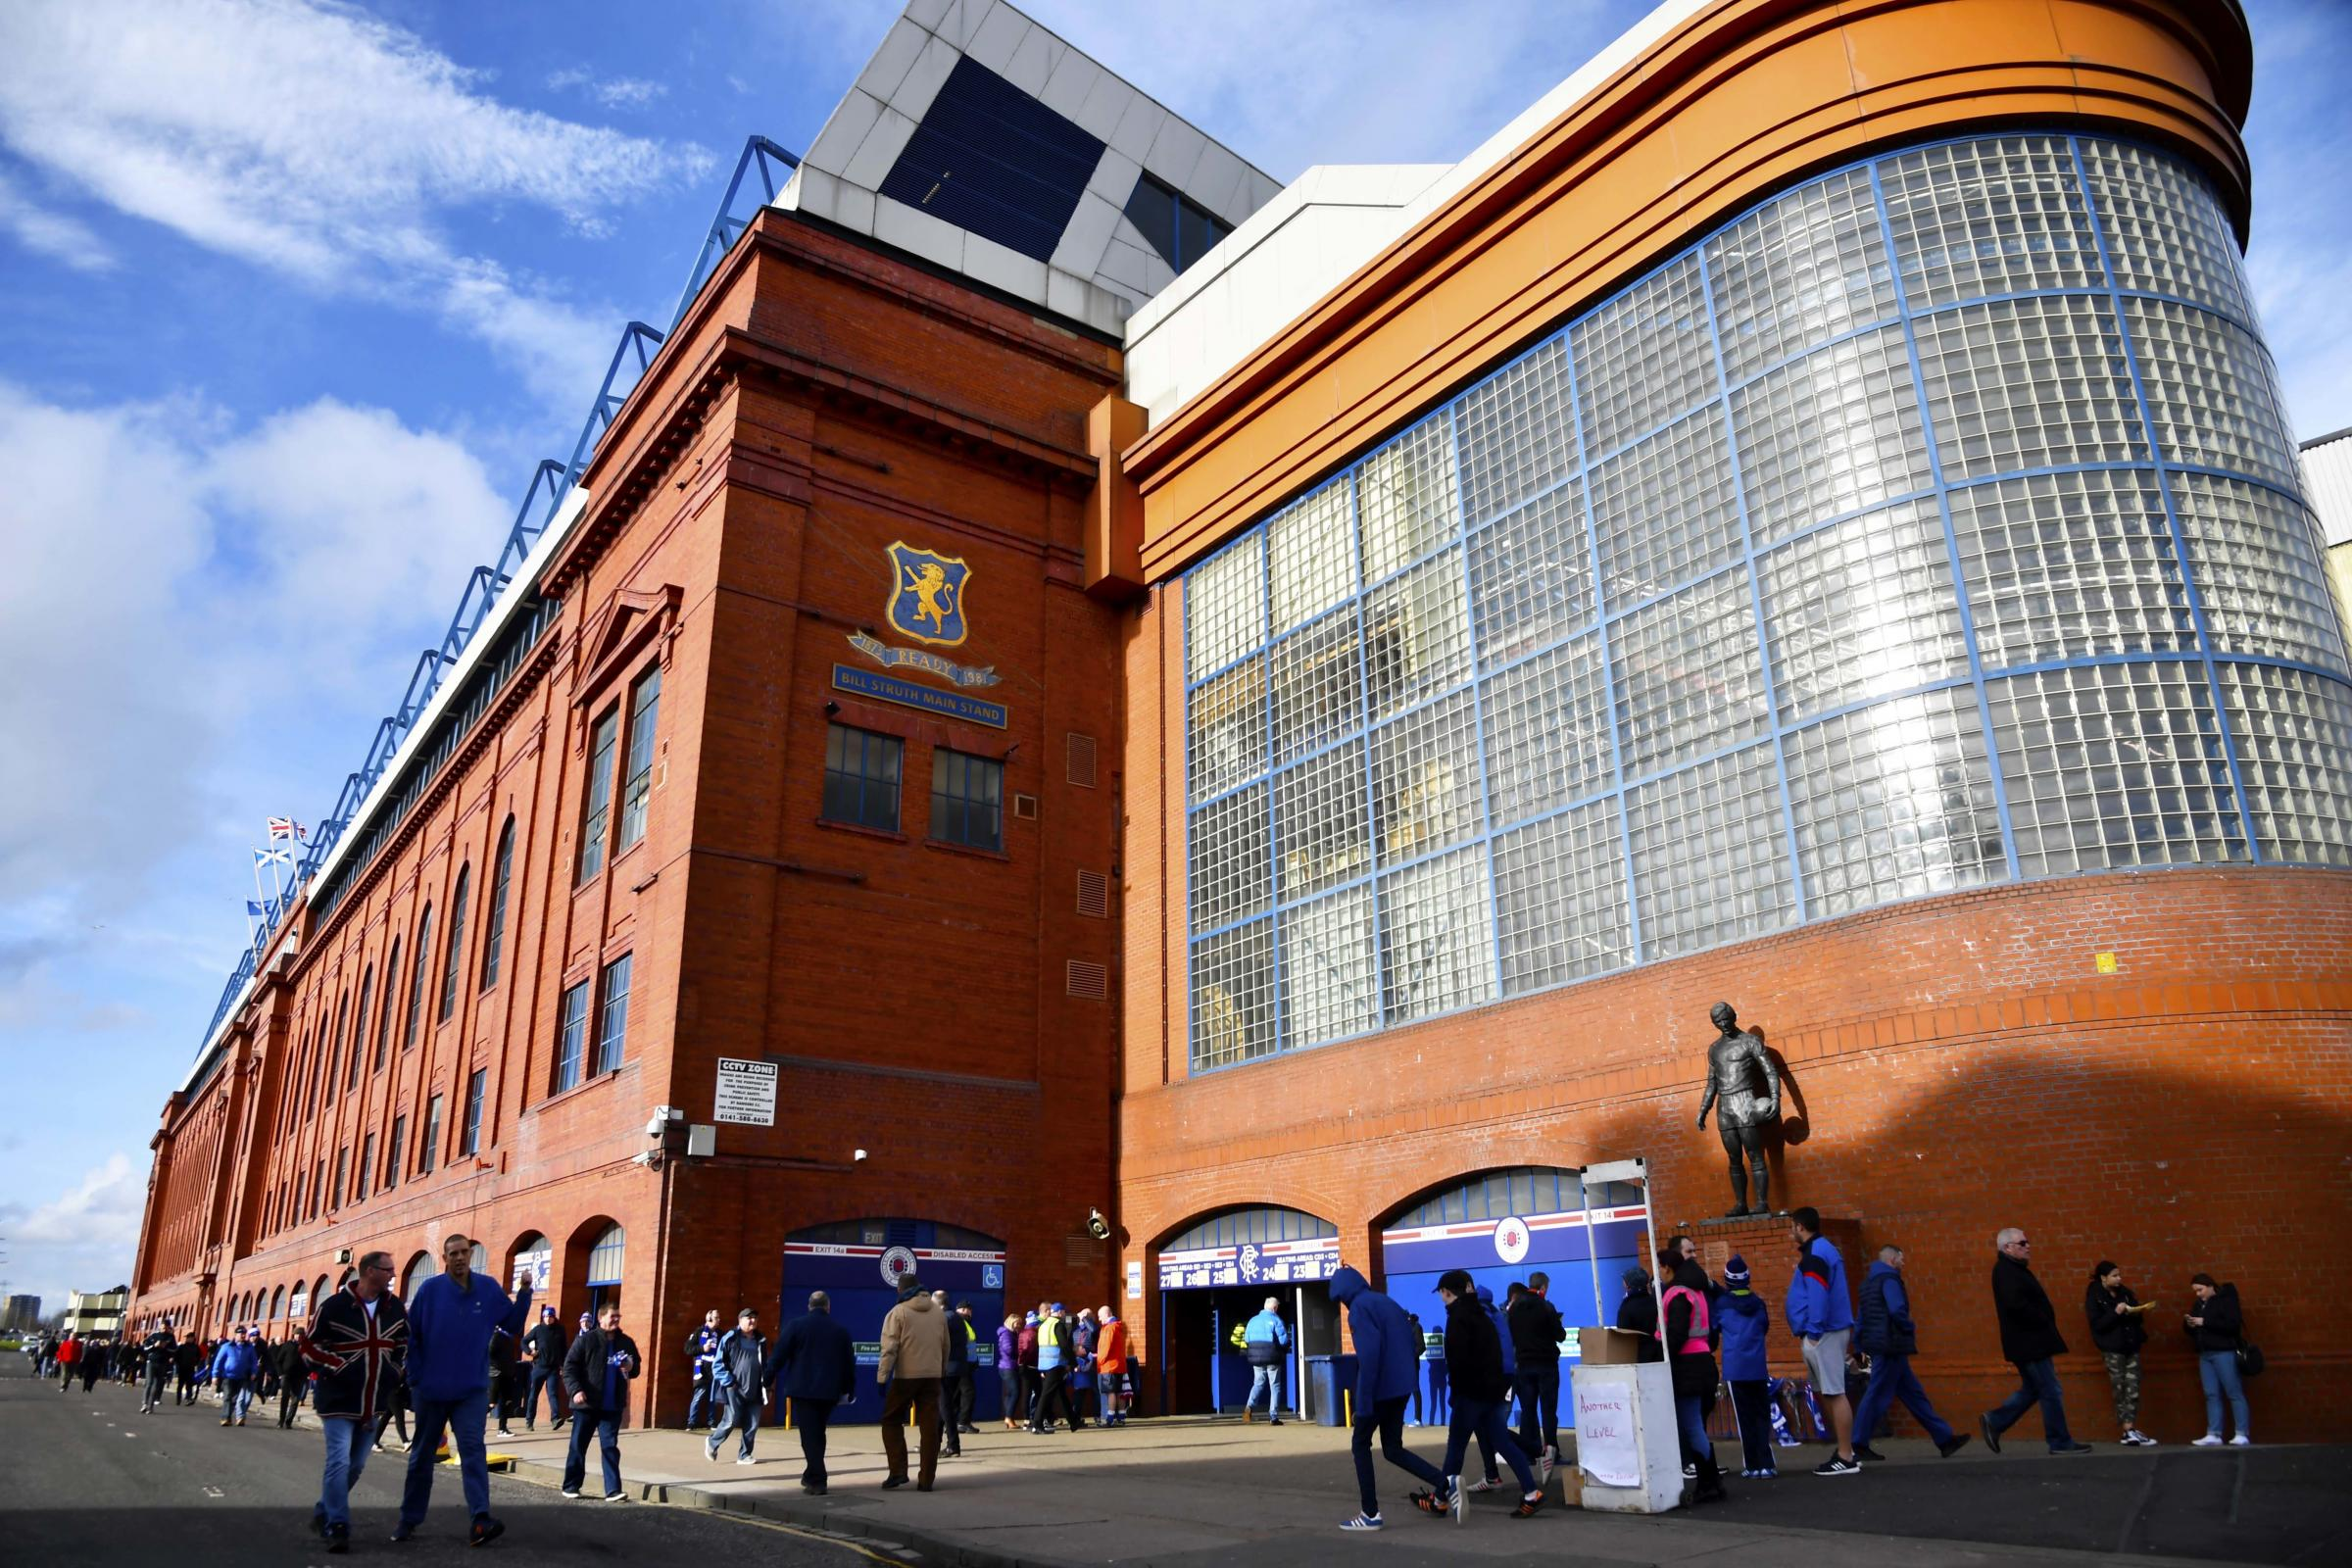 Rangers agree coaching partnership with Australian outfit Crusaders